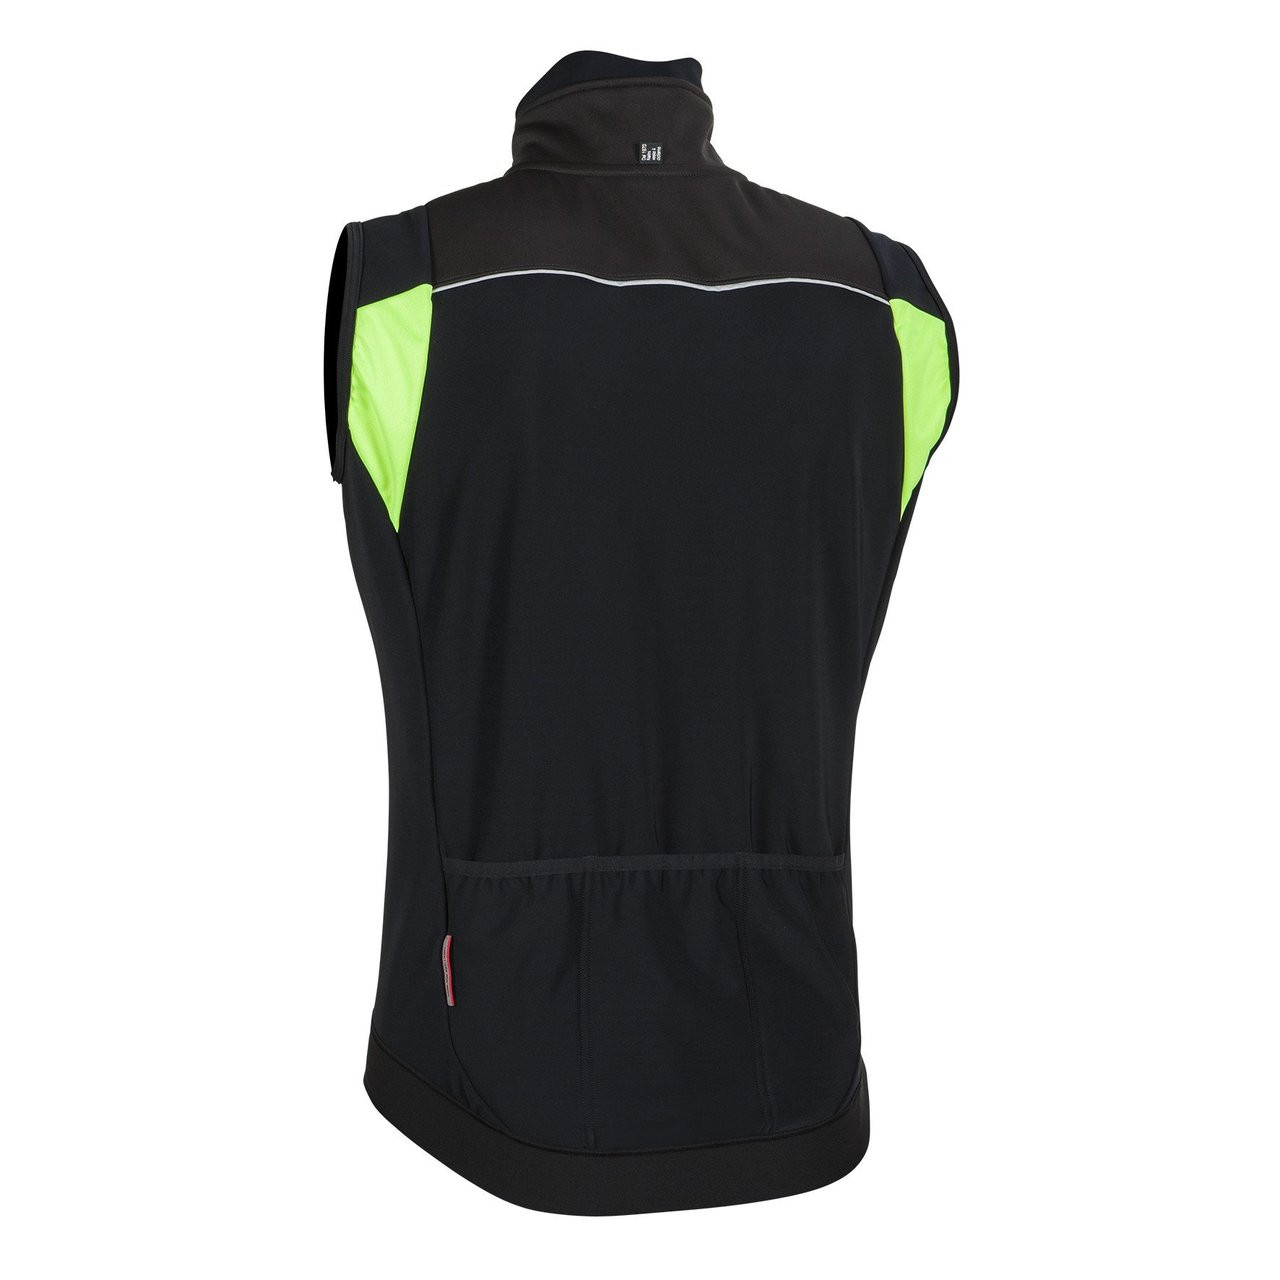 Nalini Road Warm Vest Rear